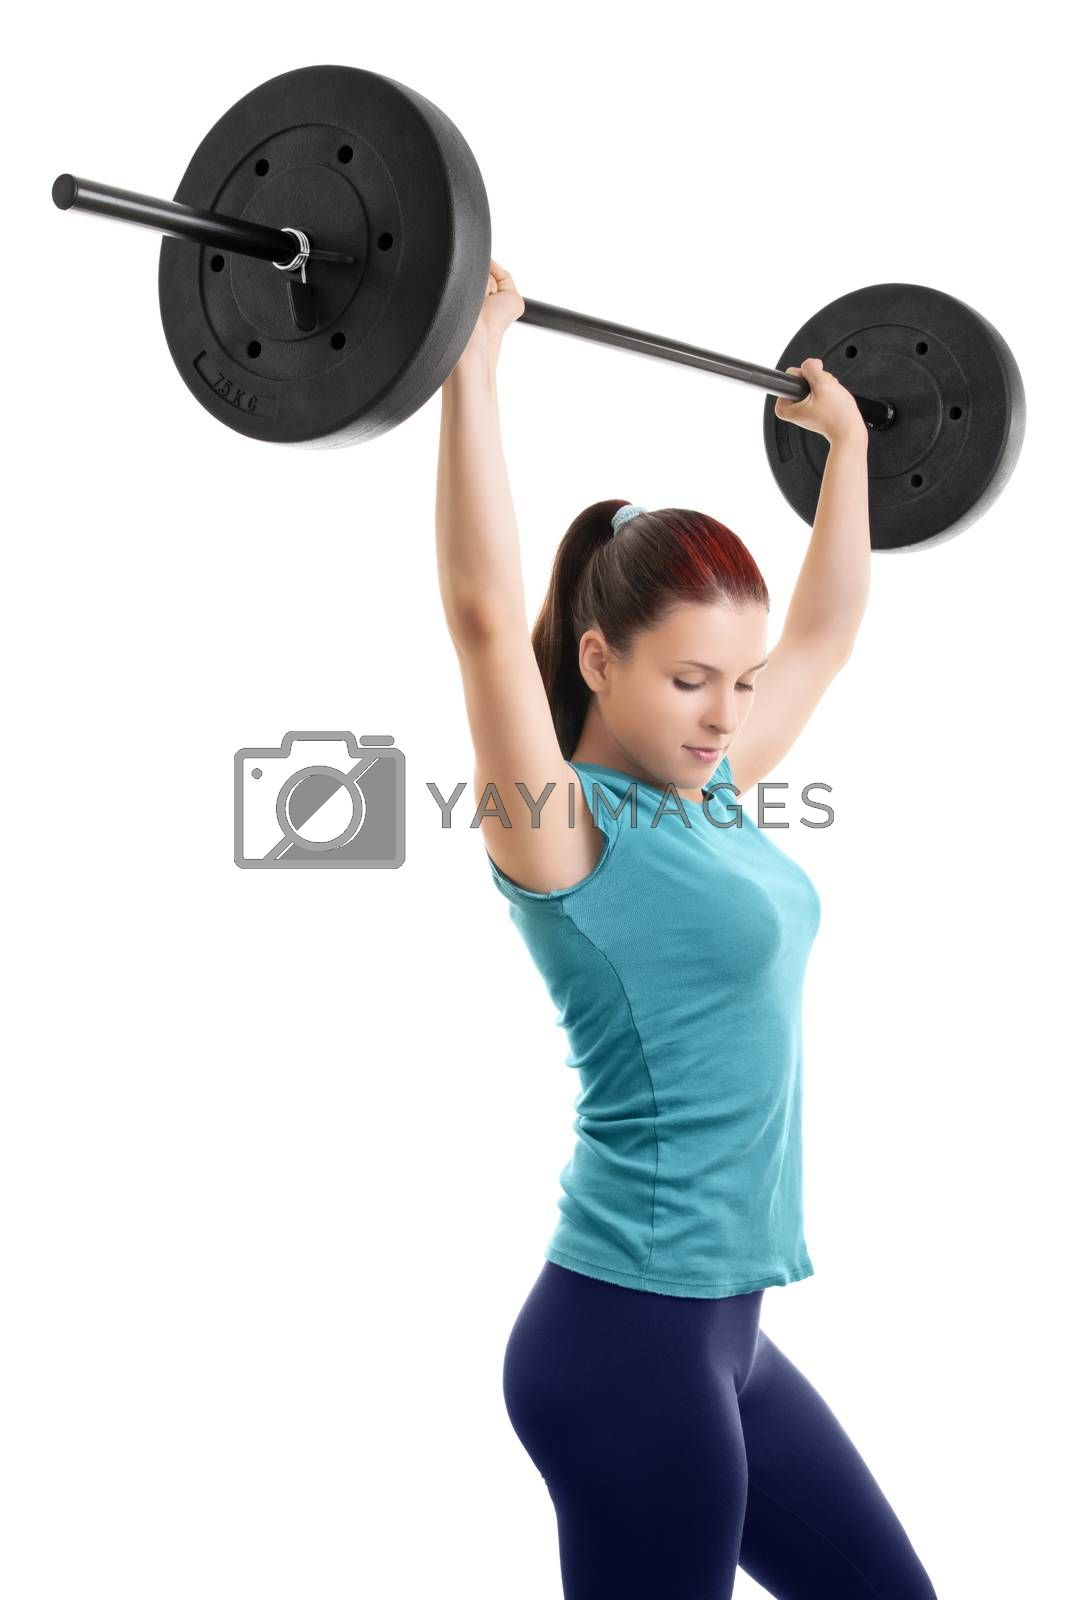 Beautiful young girl holding up a barbell, isolated on white background.